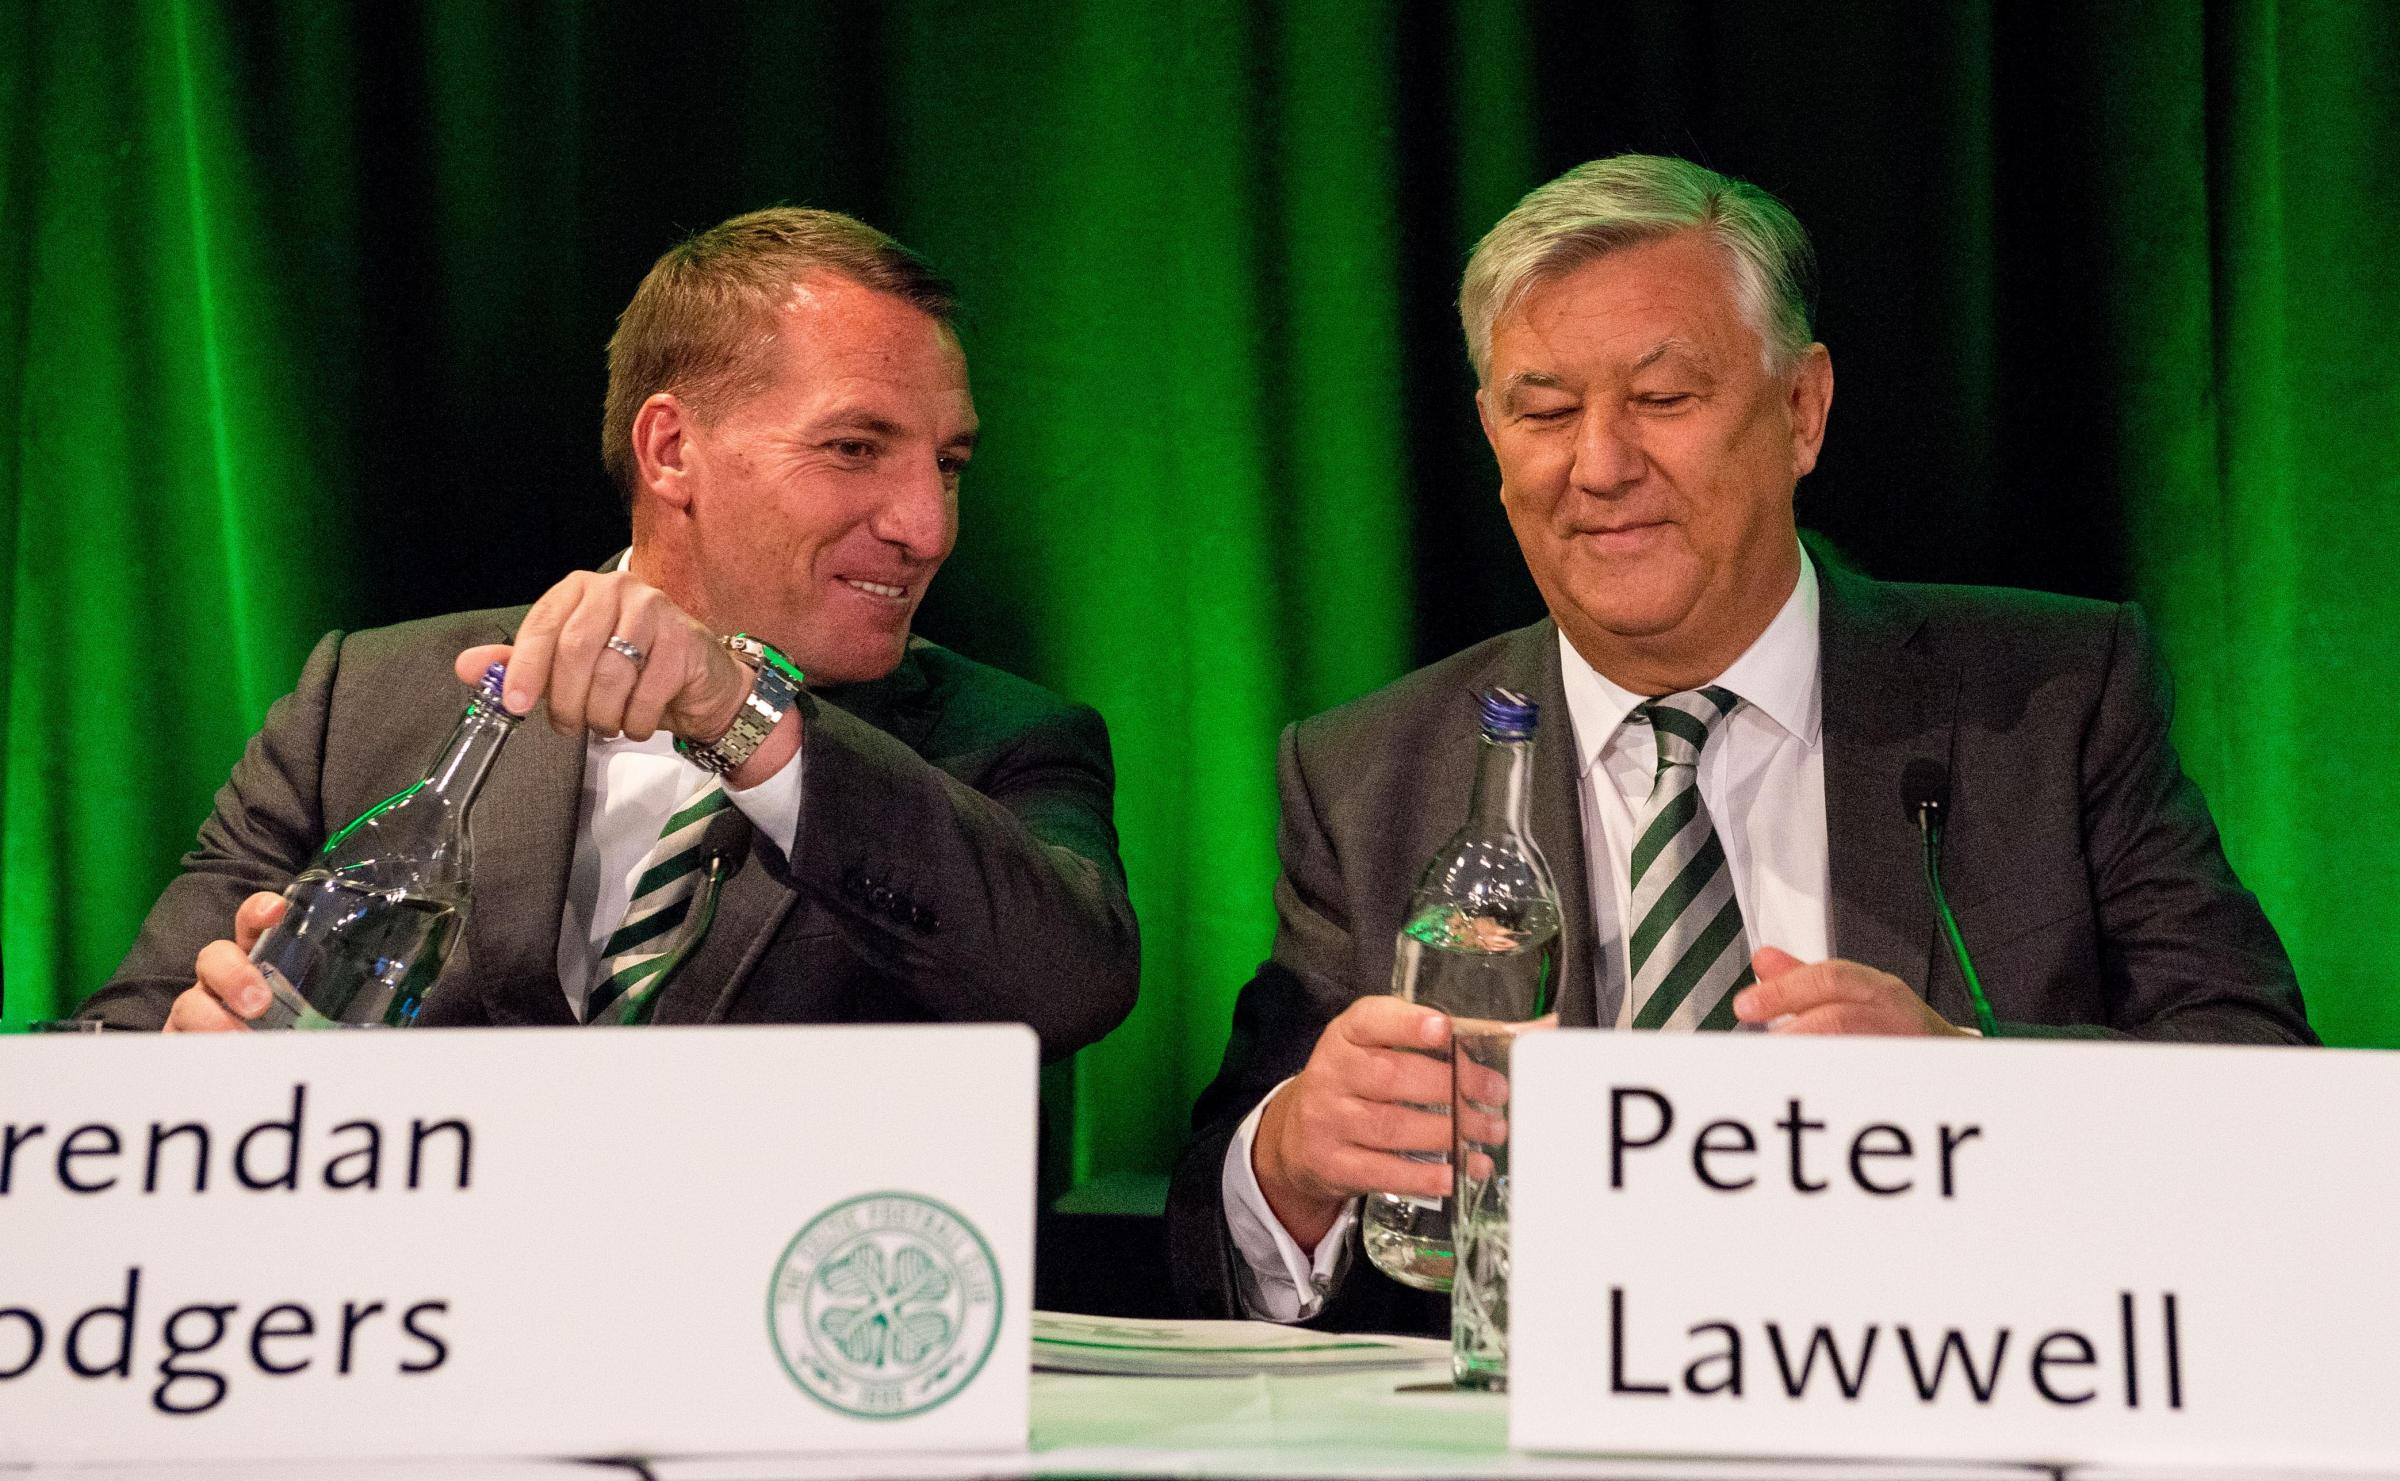 Celtic Chief Executive Peter Lawwell has managed to the club to a healthy bank balance